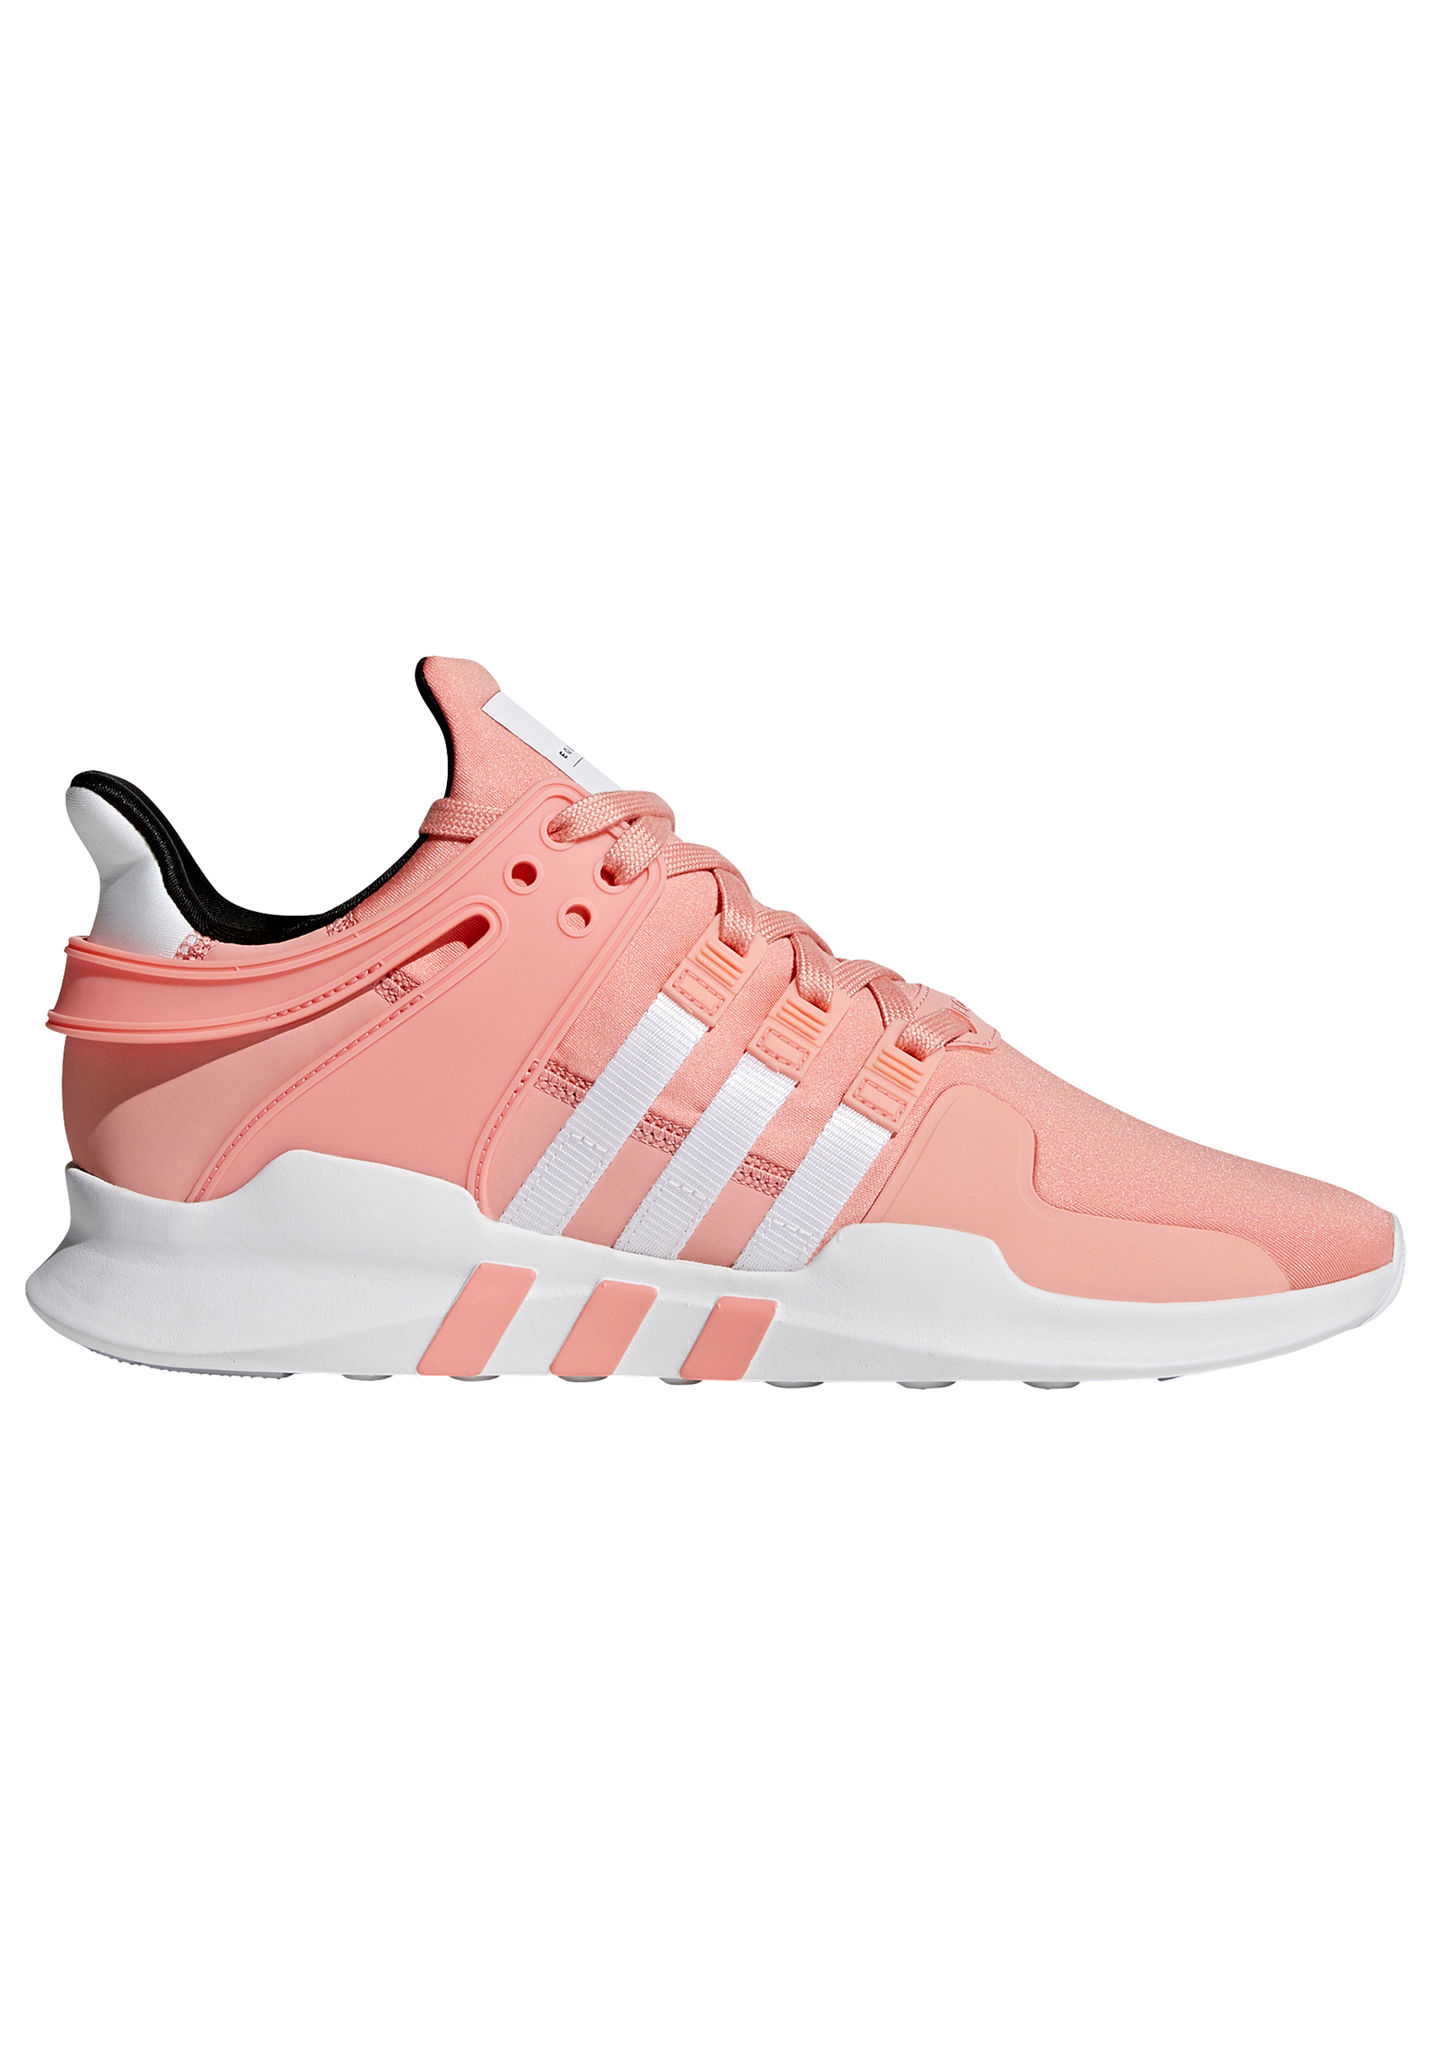 competitive price 7872d 45b88 ADIDAS ORIGINALS EQT Support ADV - Sneakers for Men - Pink